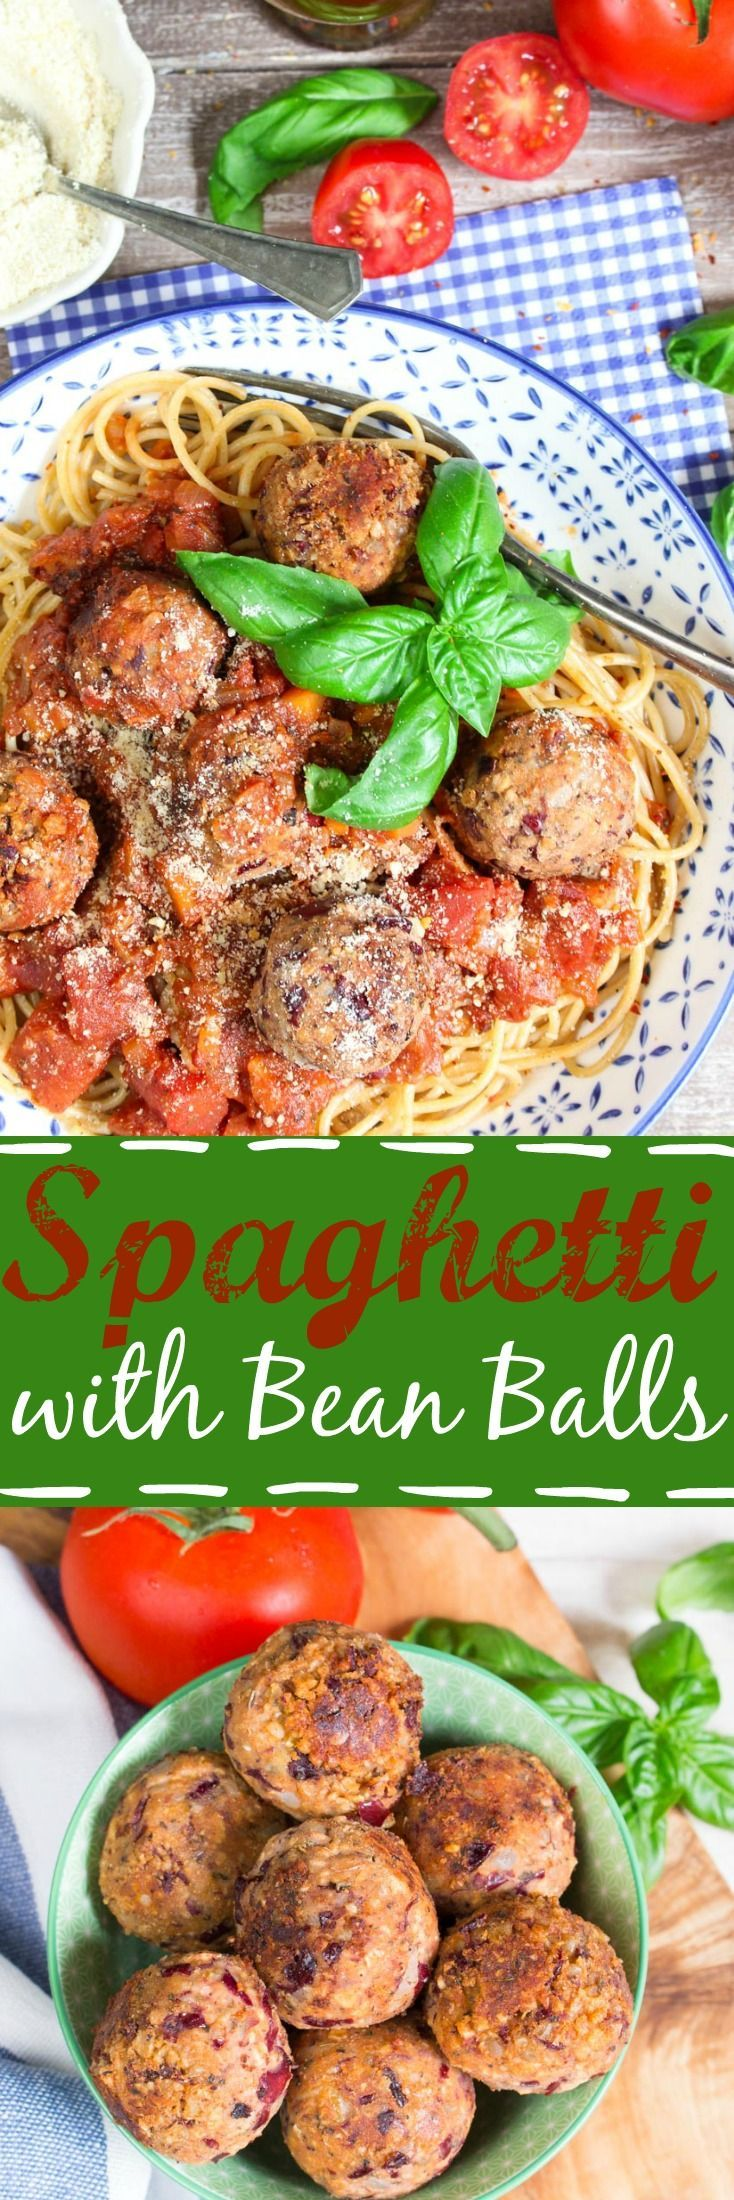 These vegan spaghetti with bean balls are perfect for quick weeknight dinners. They're super delicious and so easy to make! #vegan #beans #pasta #beanballs #veganmeatballs #vegetarian #veganpasta #healthy